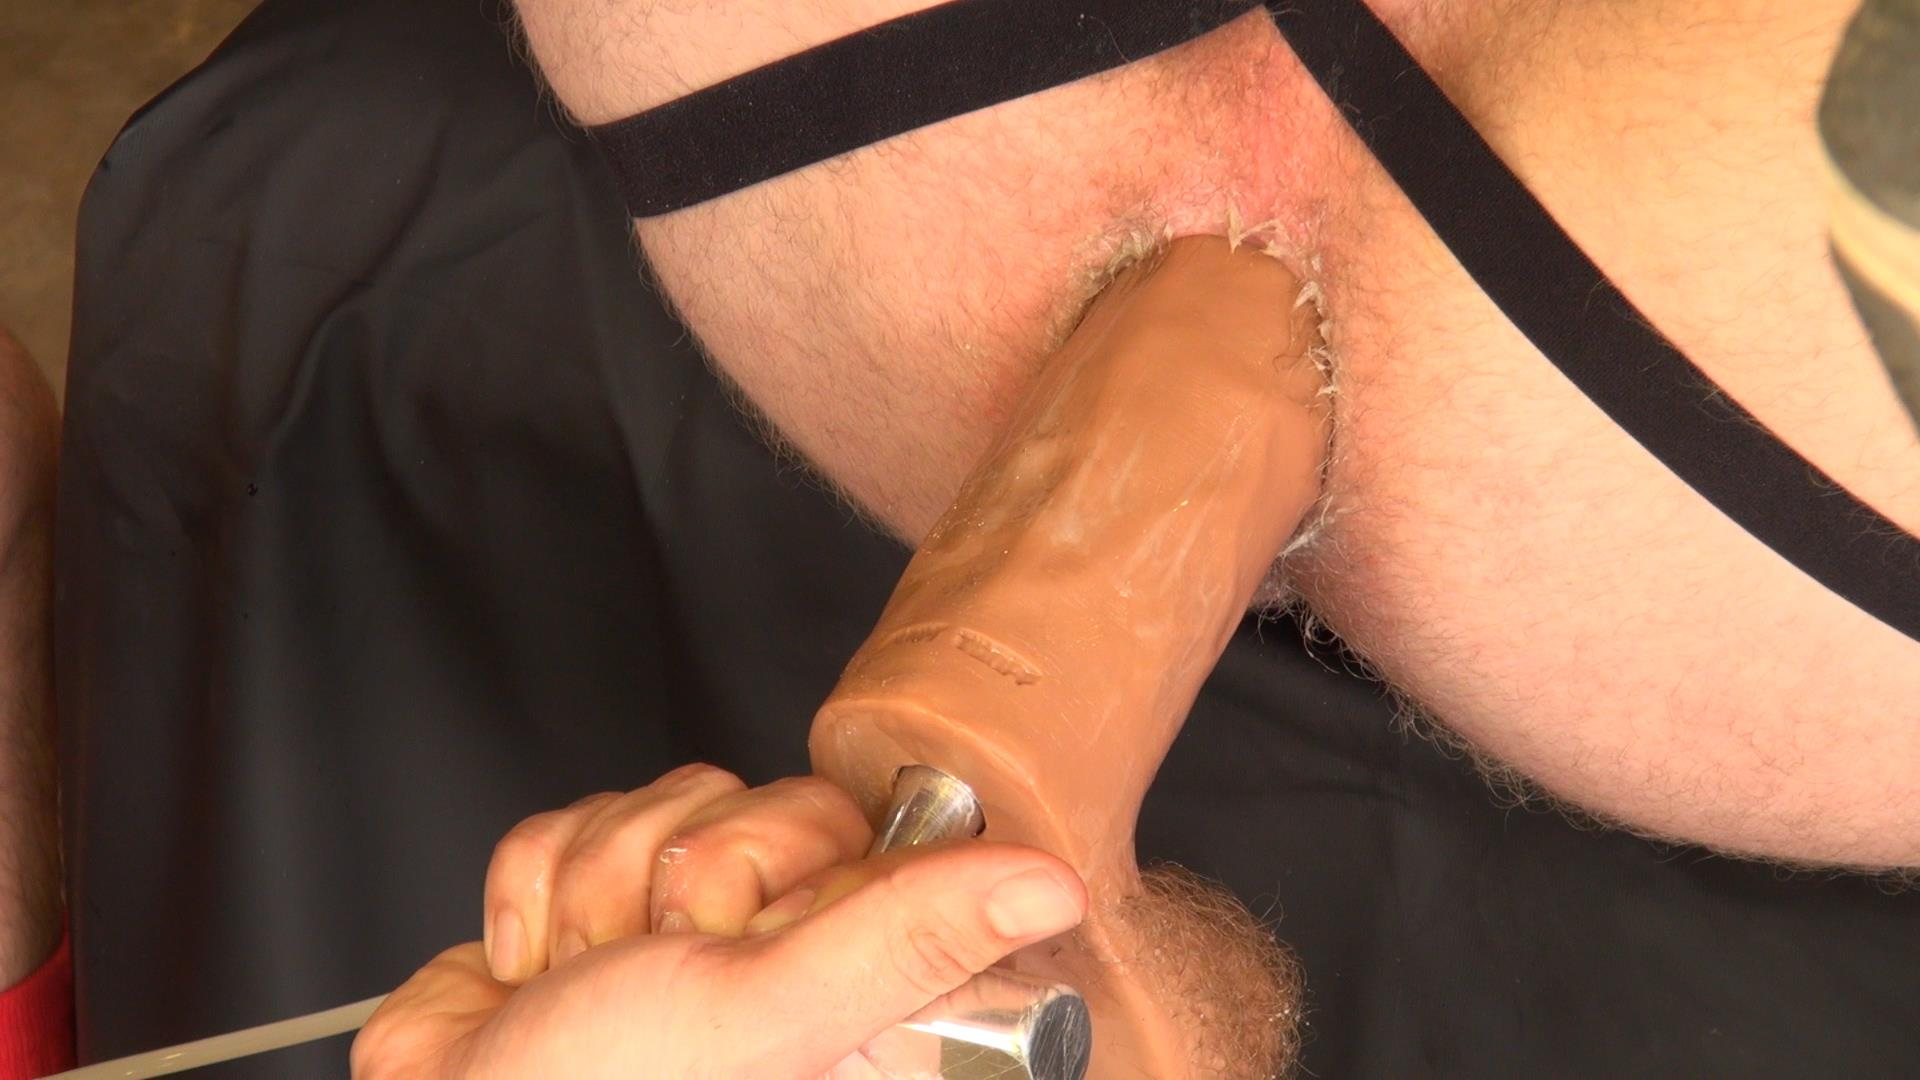 Raw-and-Rough-Brian-Bonds-and-Diego-Tovar-Bareback-Sex-and-Fisting-06 Brian Bonds Gets Fisted!